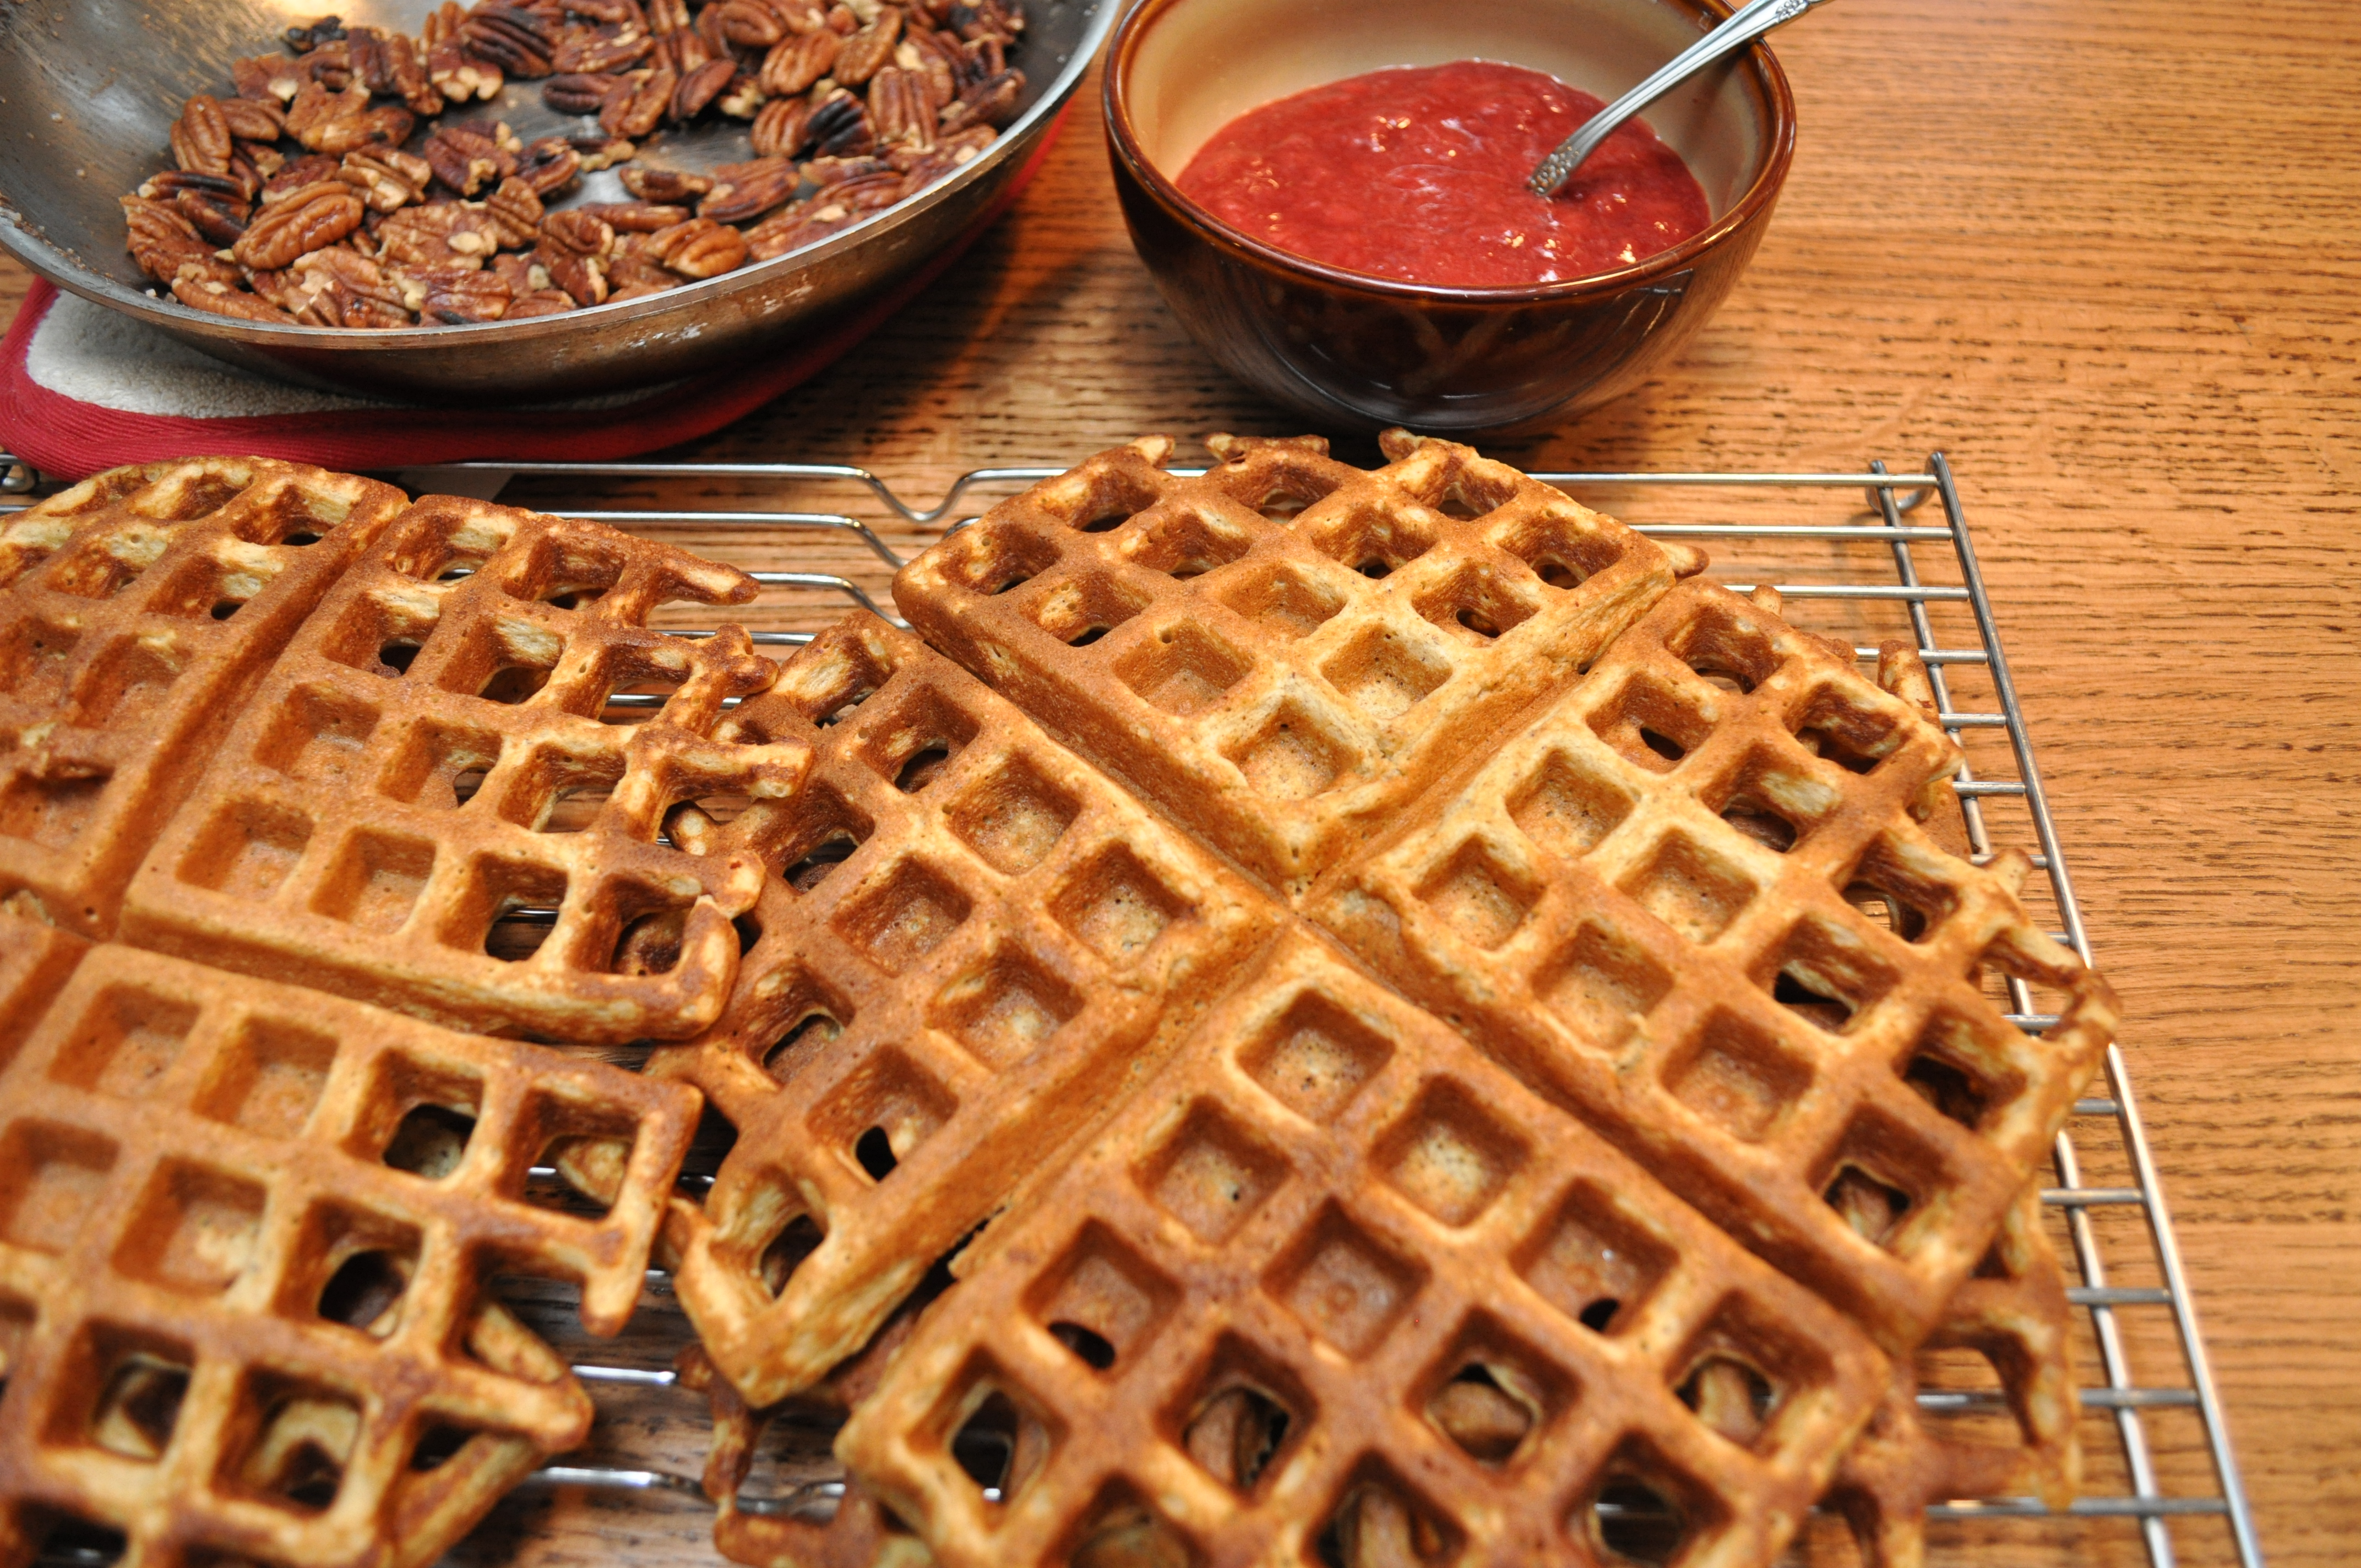 Whole grain waffles (gluten fre) with fresh strawberry sauce and toasted pecans